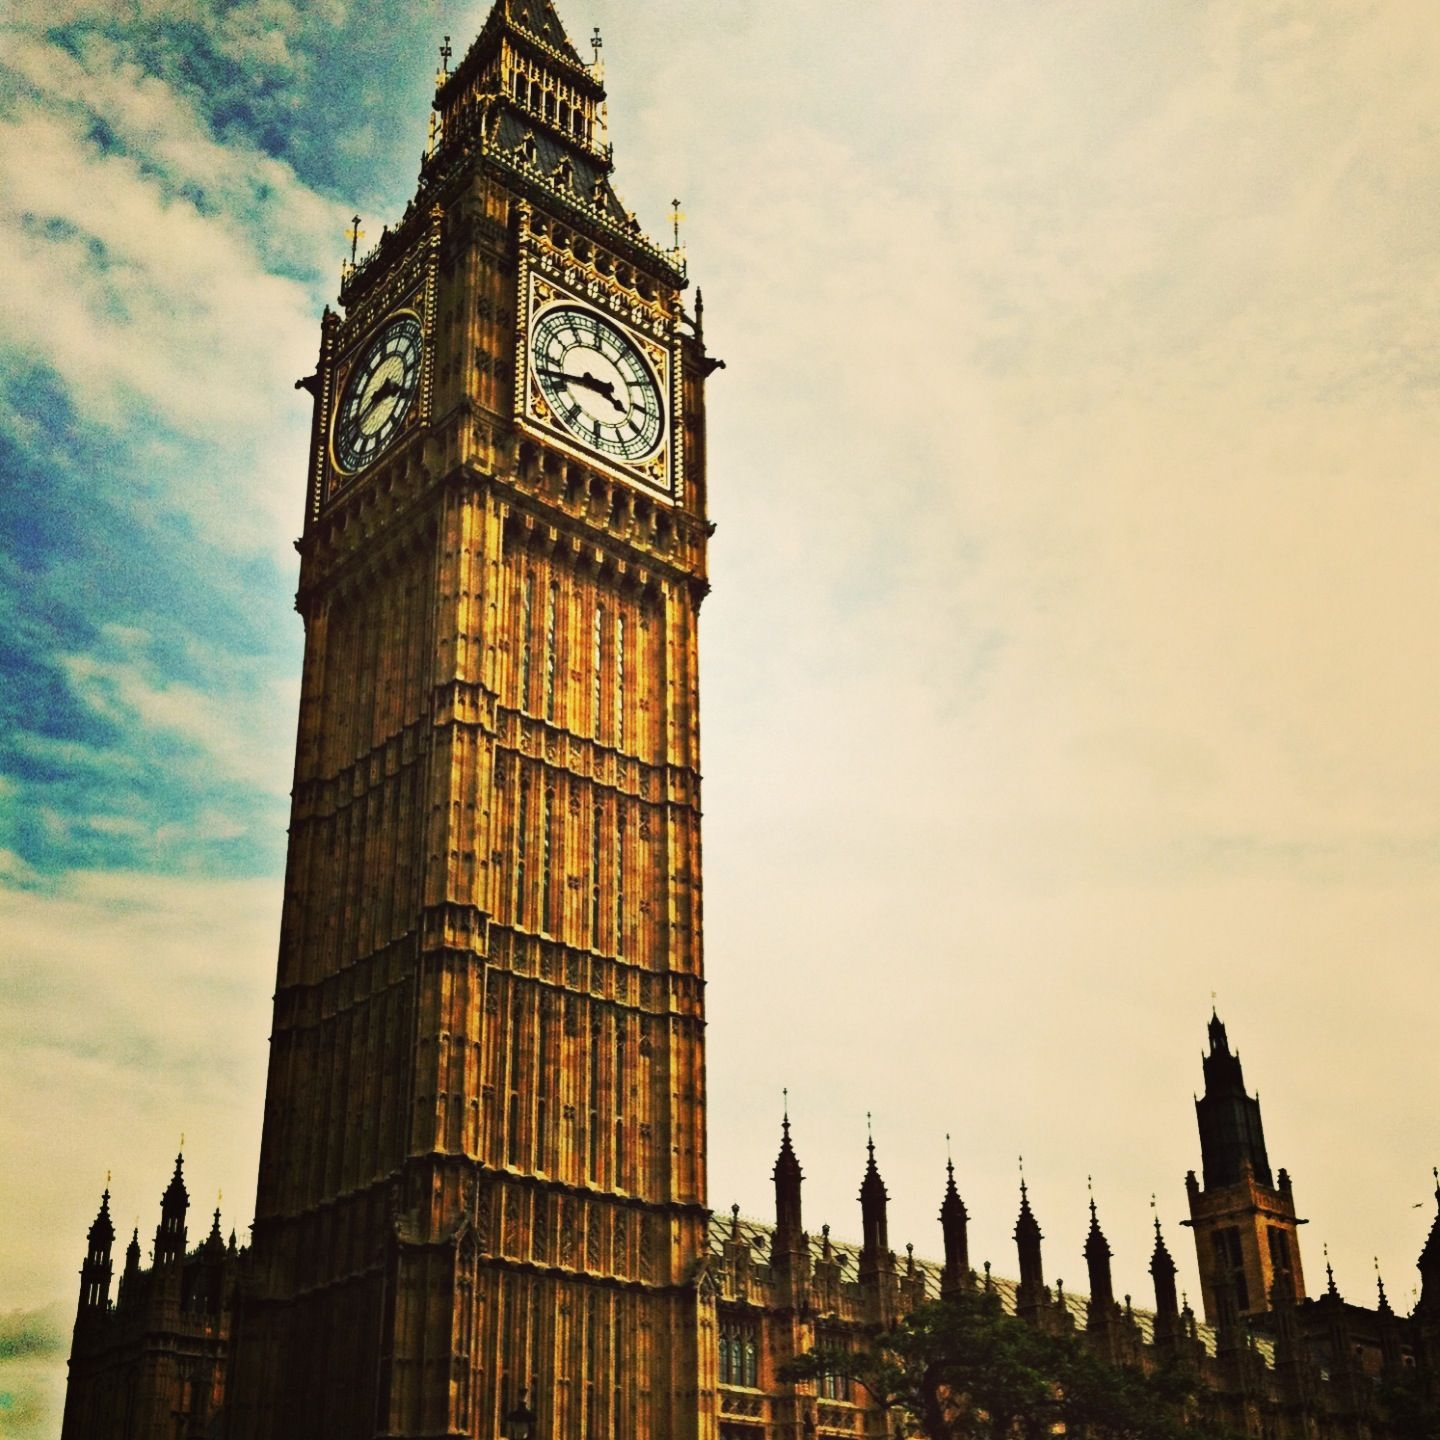 Christmas Places To Visit In London: Big Ben, London, England